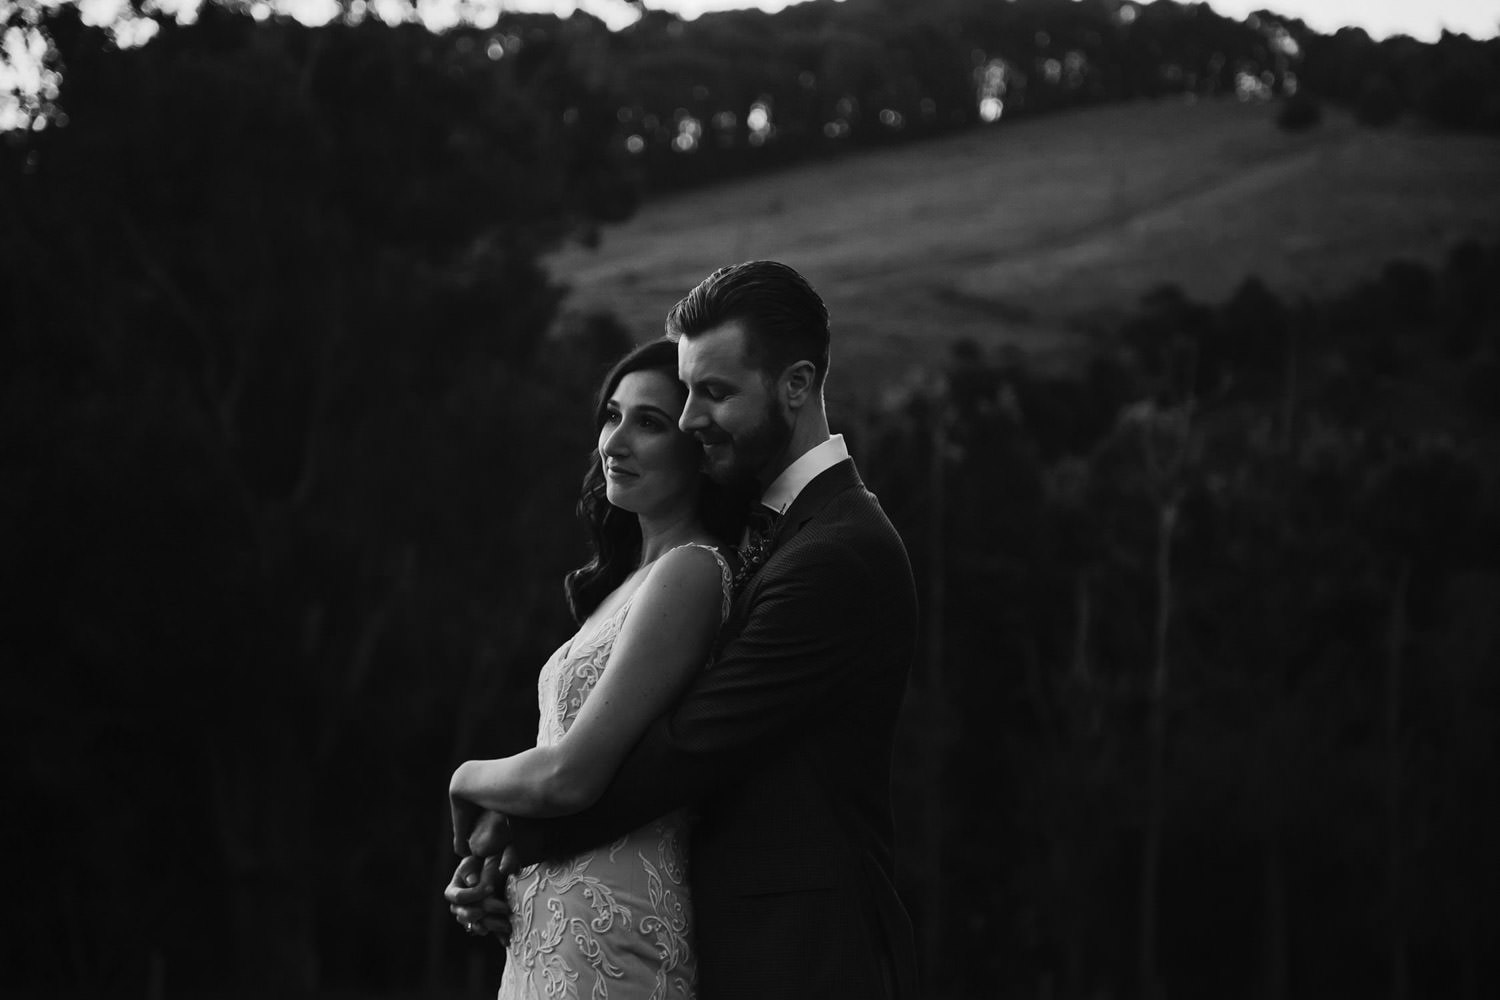 Romantic-privateproperty-wedding-Byron-bay-QuinceandMulberryStudios